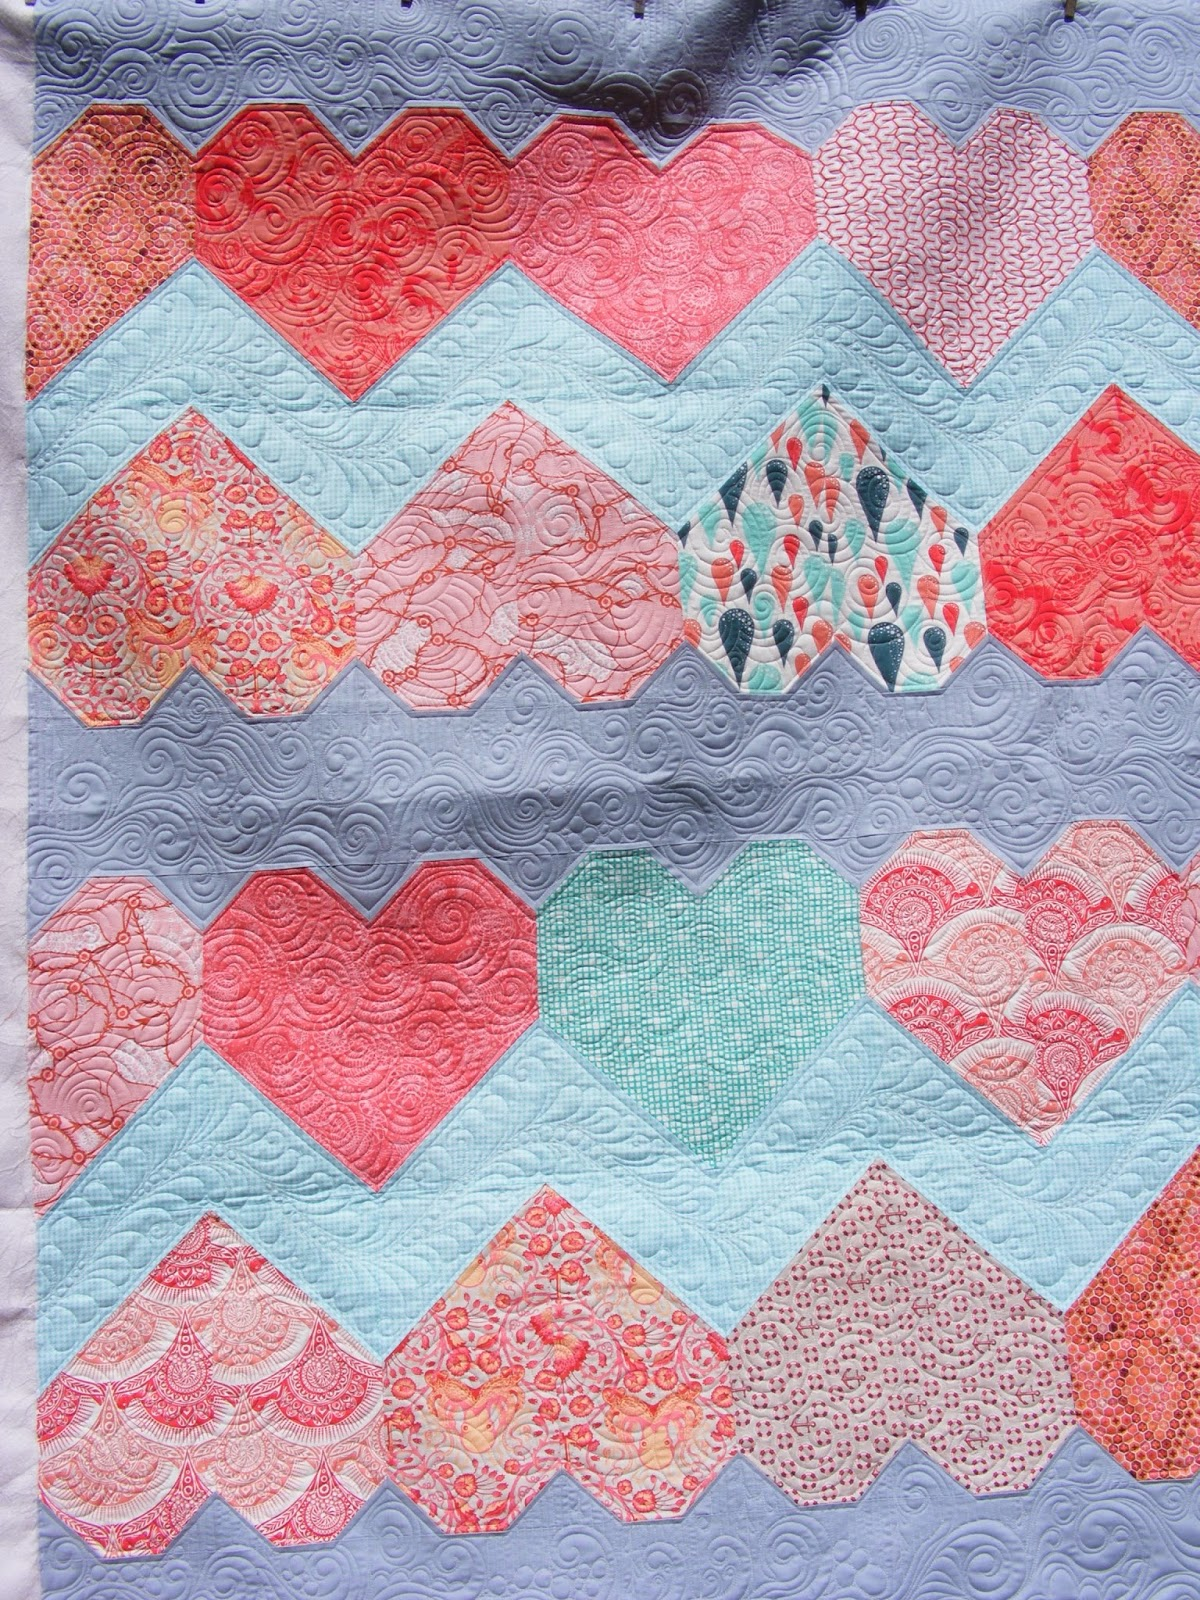 TIA CURTIS QUILTS: June 2014